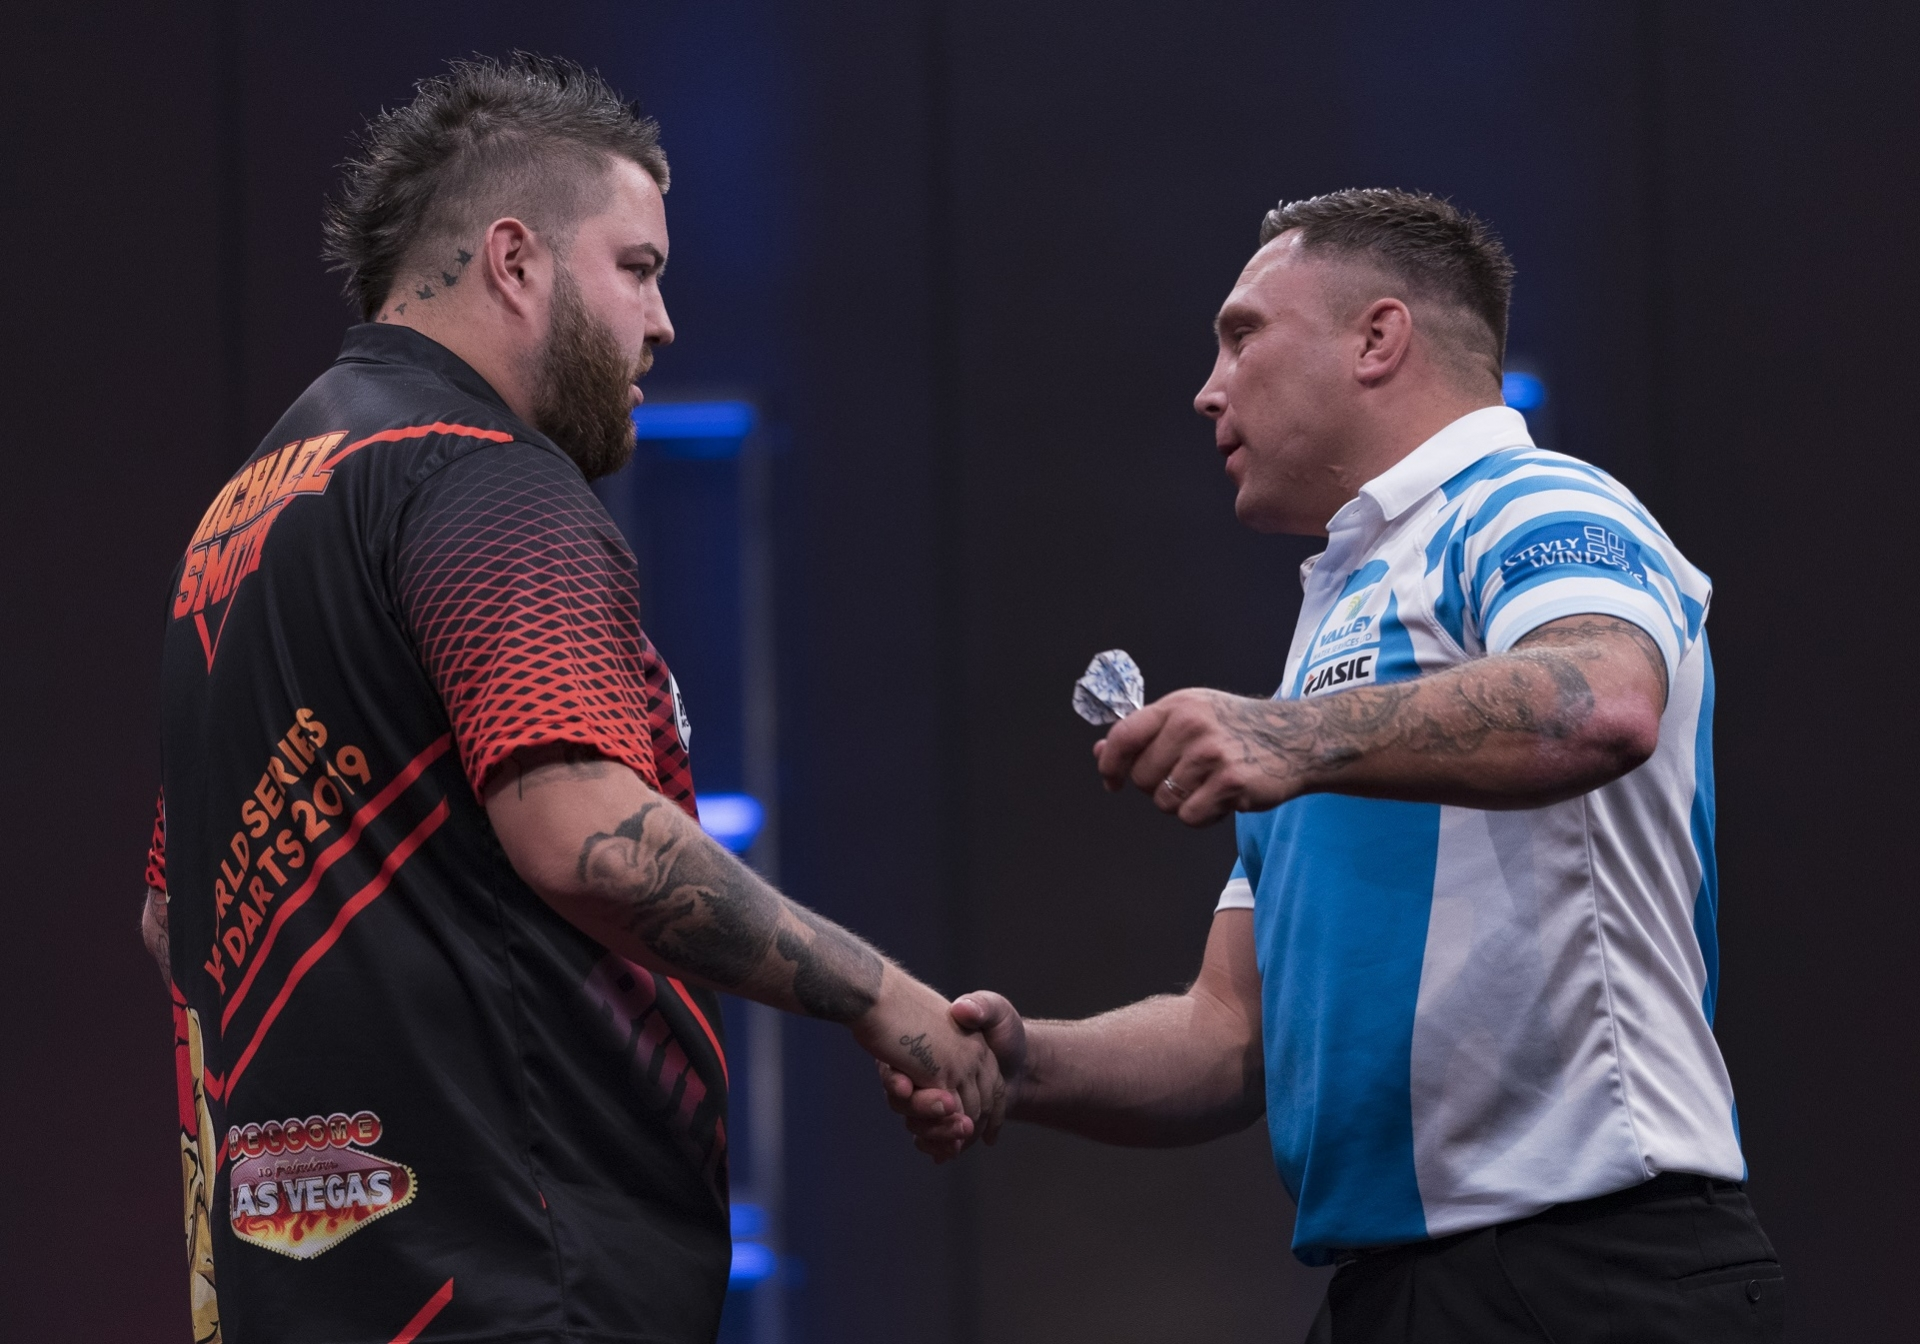 Michael Smith & Gerwyn Price